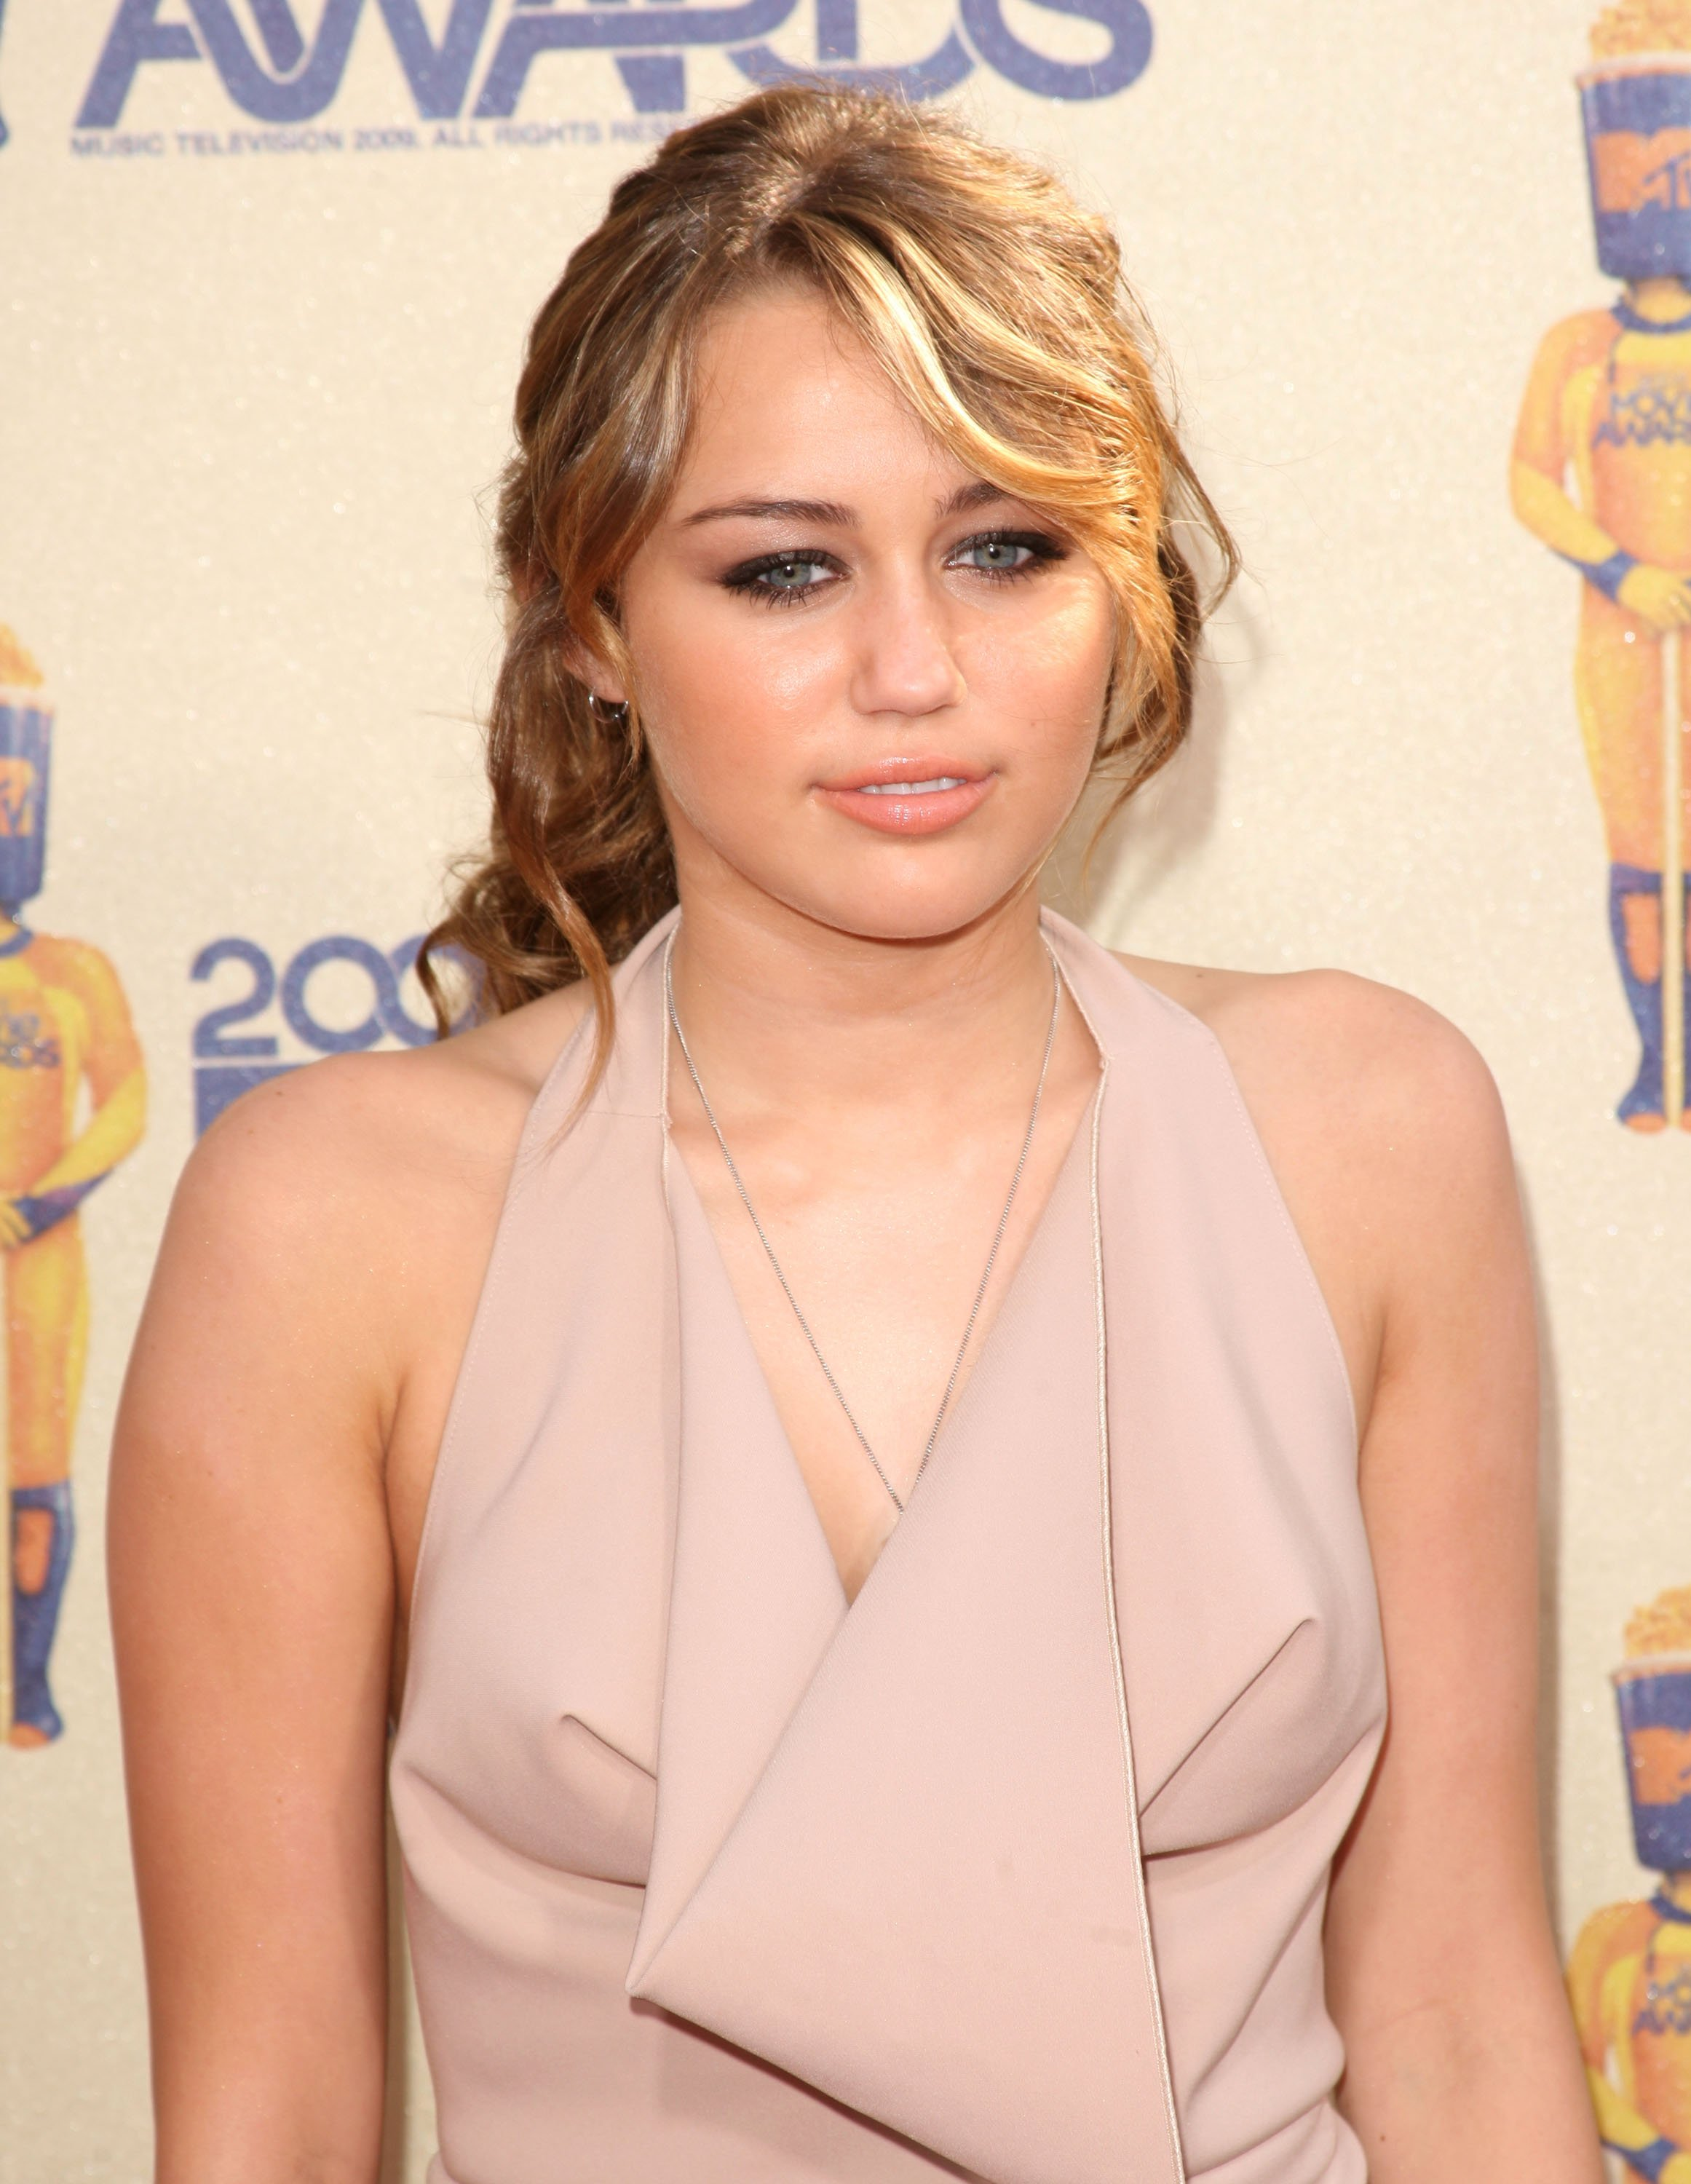 26818_Celebutopia-Miley_Cyrus_arrives_at_the_2009_MTV_Movie_Awards-21_122_1084lo.jpg